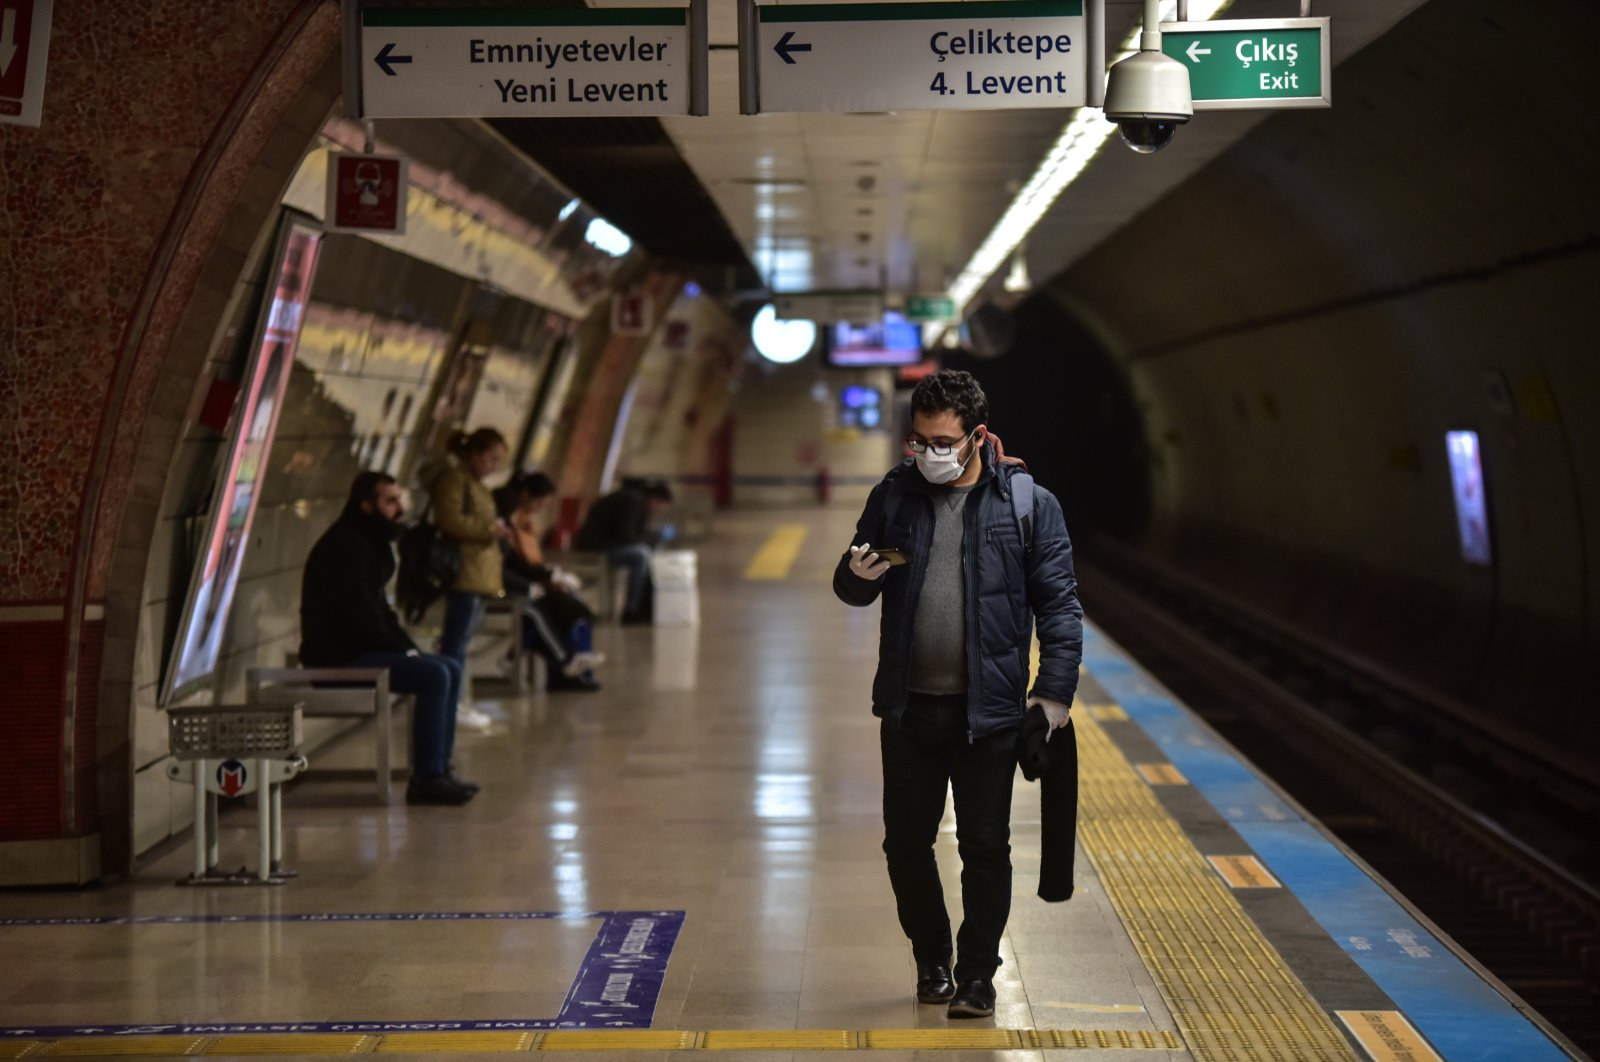 A man wearing a mask walks at a metro station, Monday, March 23, 2020, in Istanbul. (DHA Photo)